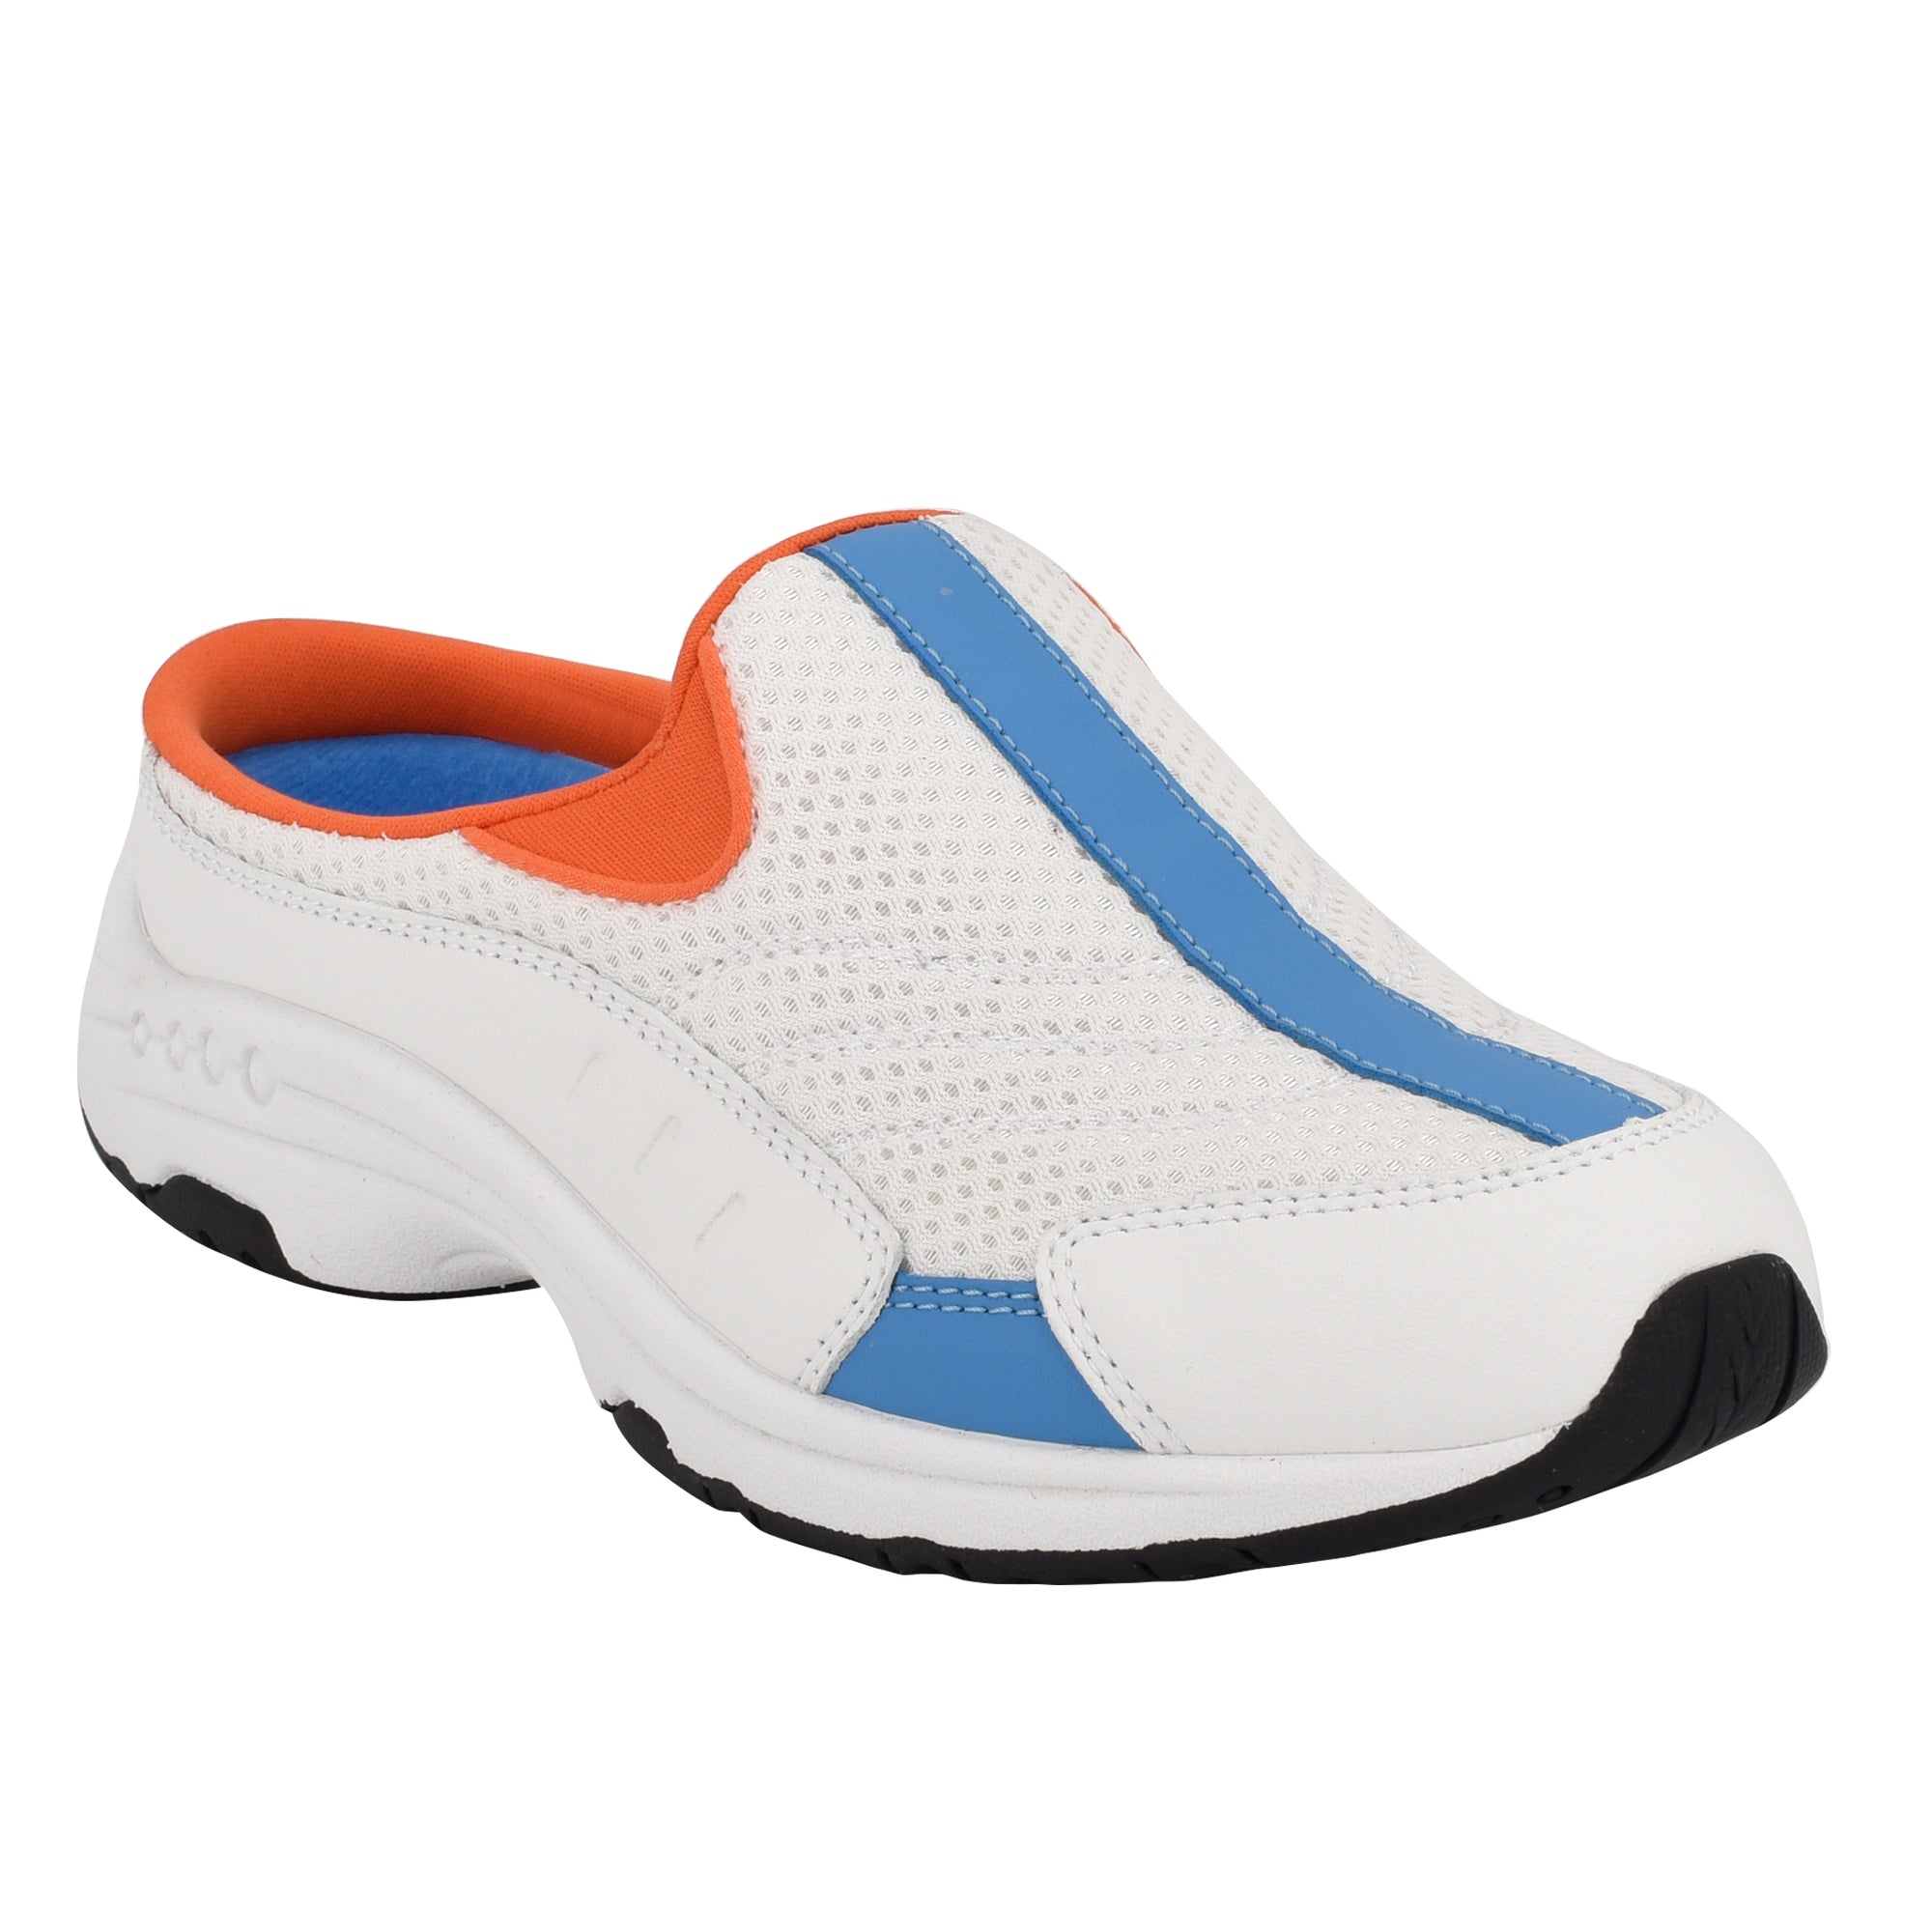 traveltime-clogs-in-blue-white-orange